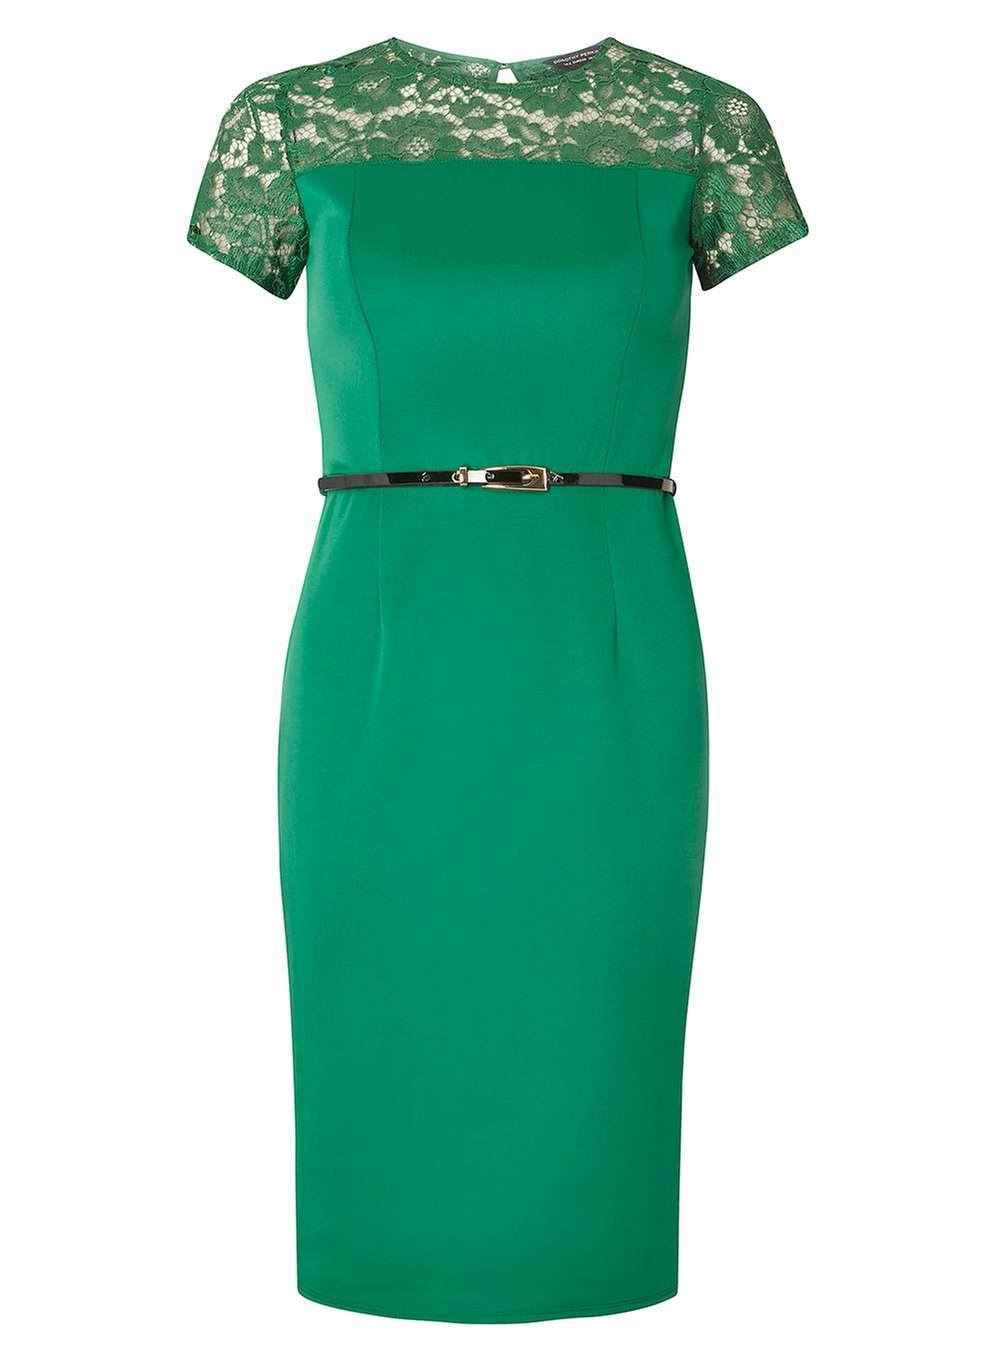 Womens Lace Contrast Pencil Dress Green - style: shift; pattern: plain; bust detail: sheer at bust; waist detail: belted waist/tie at waist/drawstring; predominant colour: emerald green; occasions: evening; length: on the knee; fit: body skimming; fibres: polyester/polyamide - stretch; neckline: crew; sleeve length: short sleeve; sleeve style: standard; pattern type: fabric; texture group: jersey - stretchy/drapey; embellishment: lace; season: a/w 2016